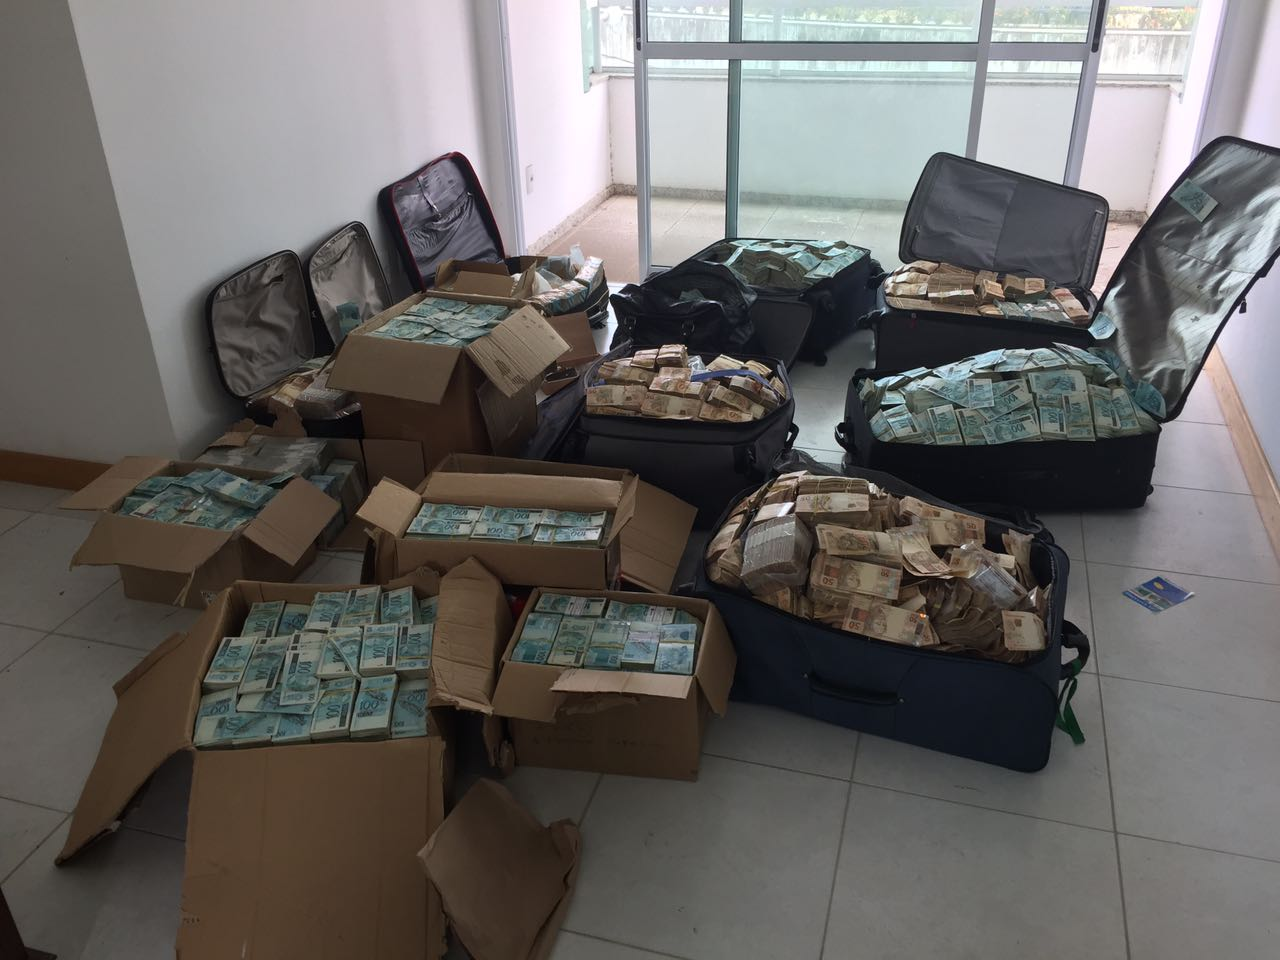 This image of suitcases filled up with money allegedly found stashed in former Finance Minister, Ignatius Chombo's residence are going around social media.